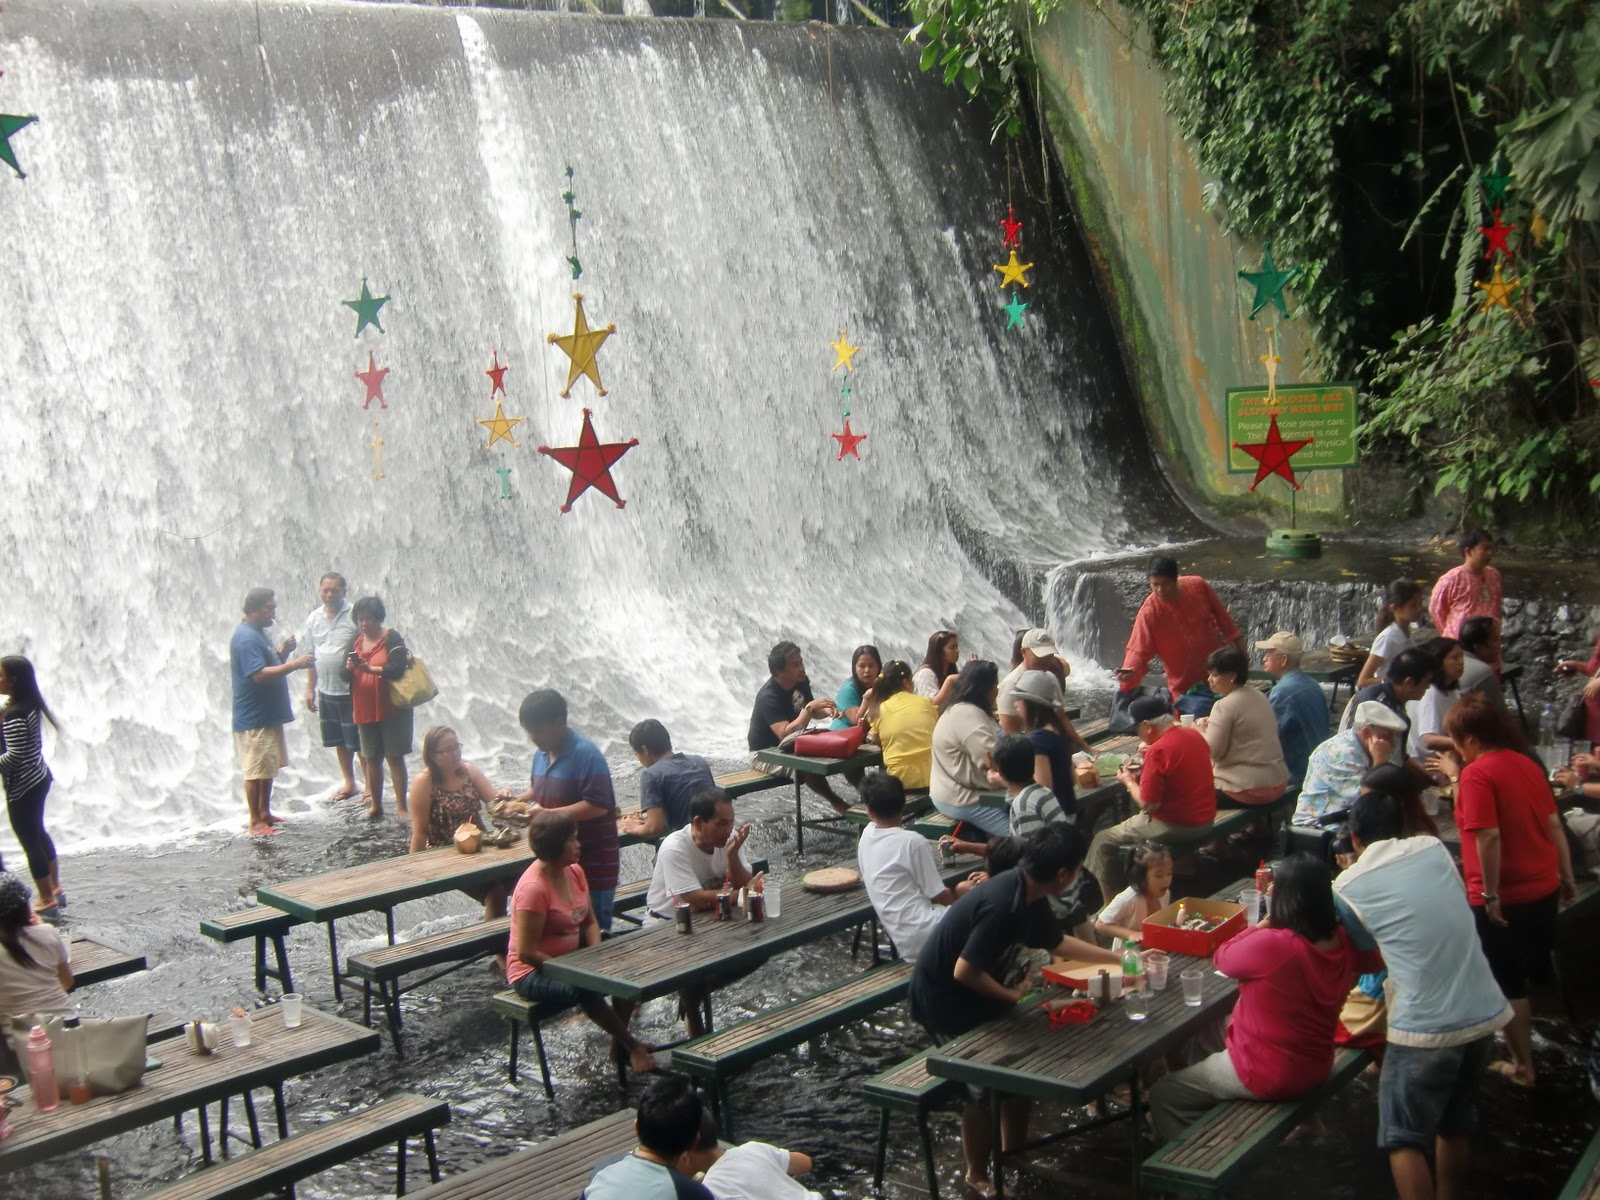 Pigging Out In Nyc Dining By The Waterfalls At Villa Escudero